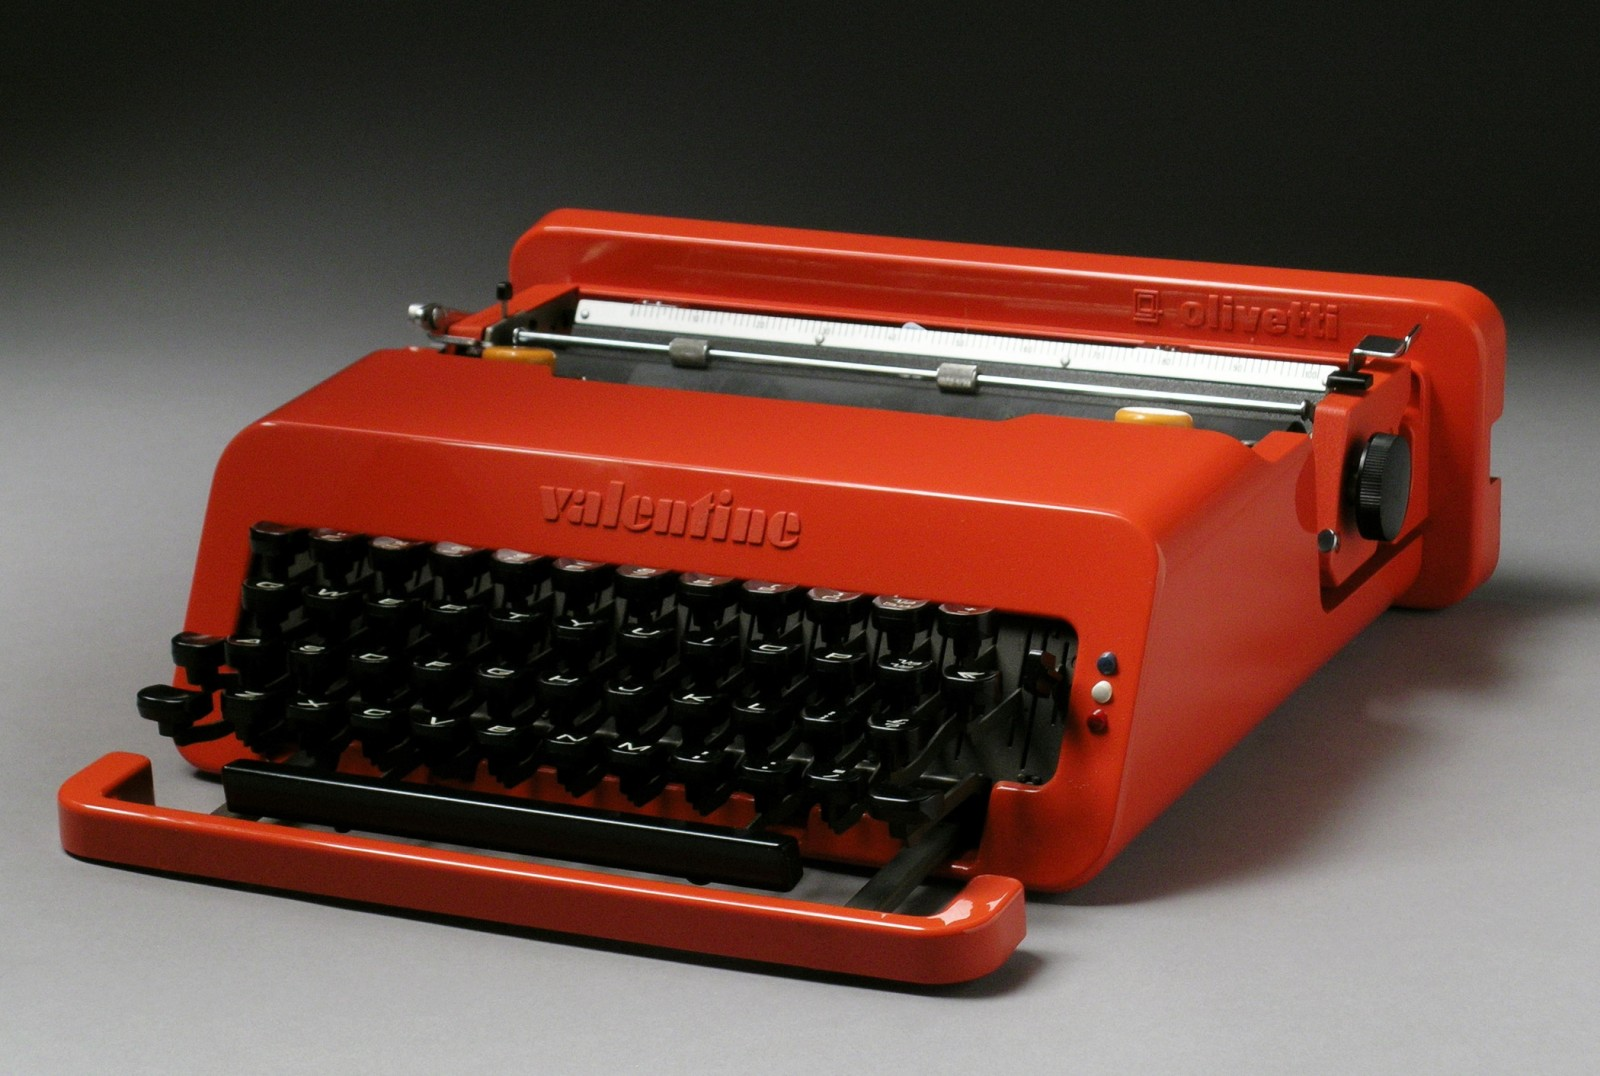 Ettore Sottsass, in collaboration with Perry A King, Valentine portable typewriter